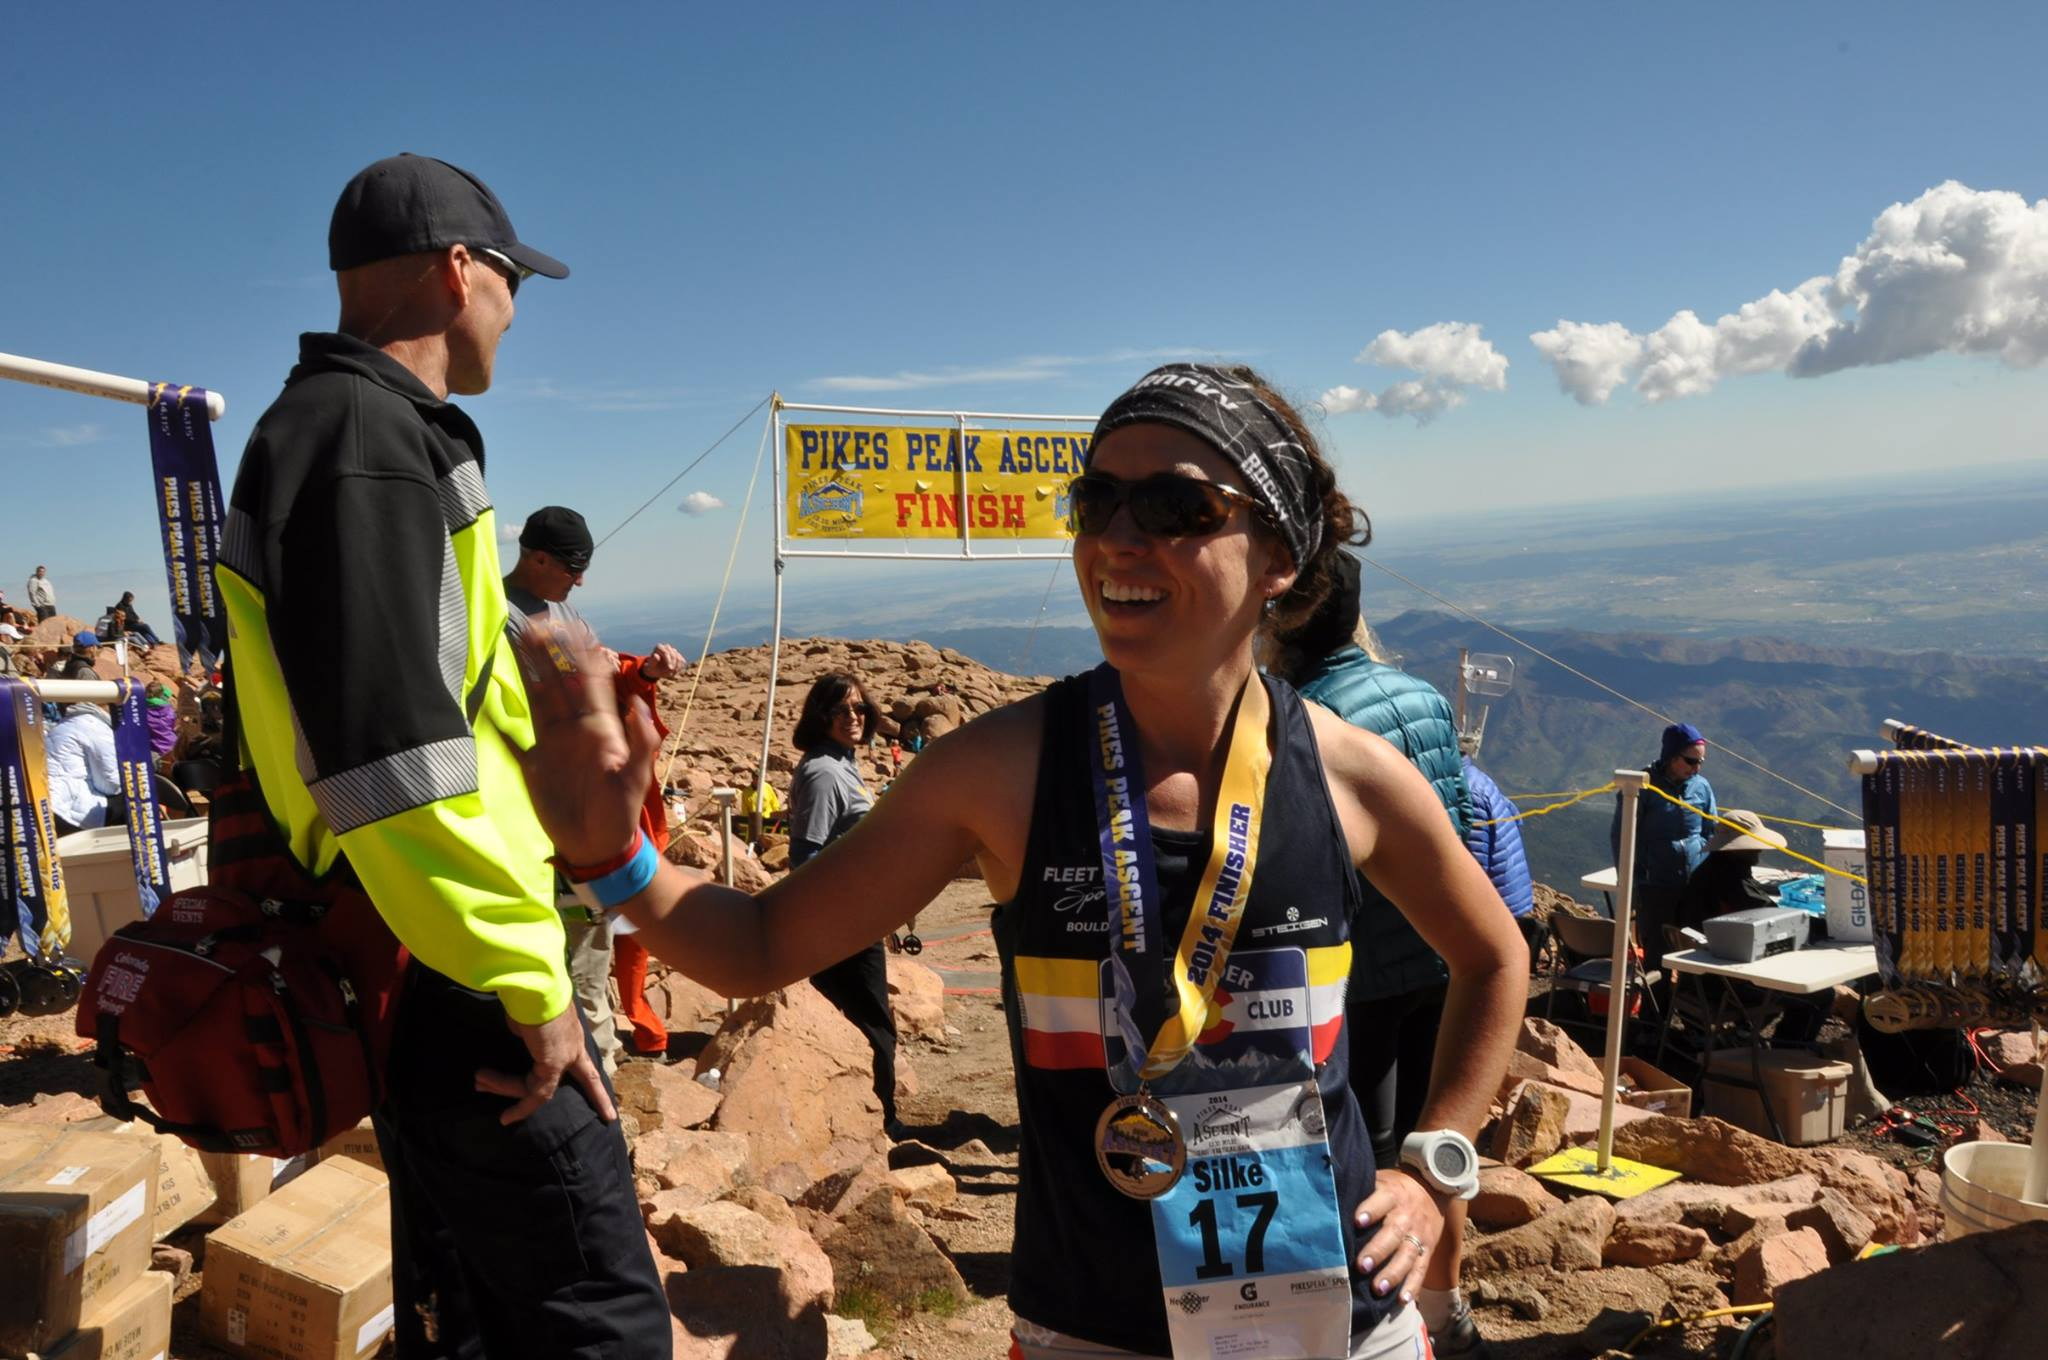 Silke Pikes Peak Ascent finish